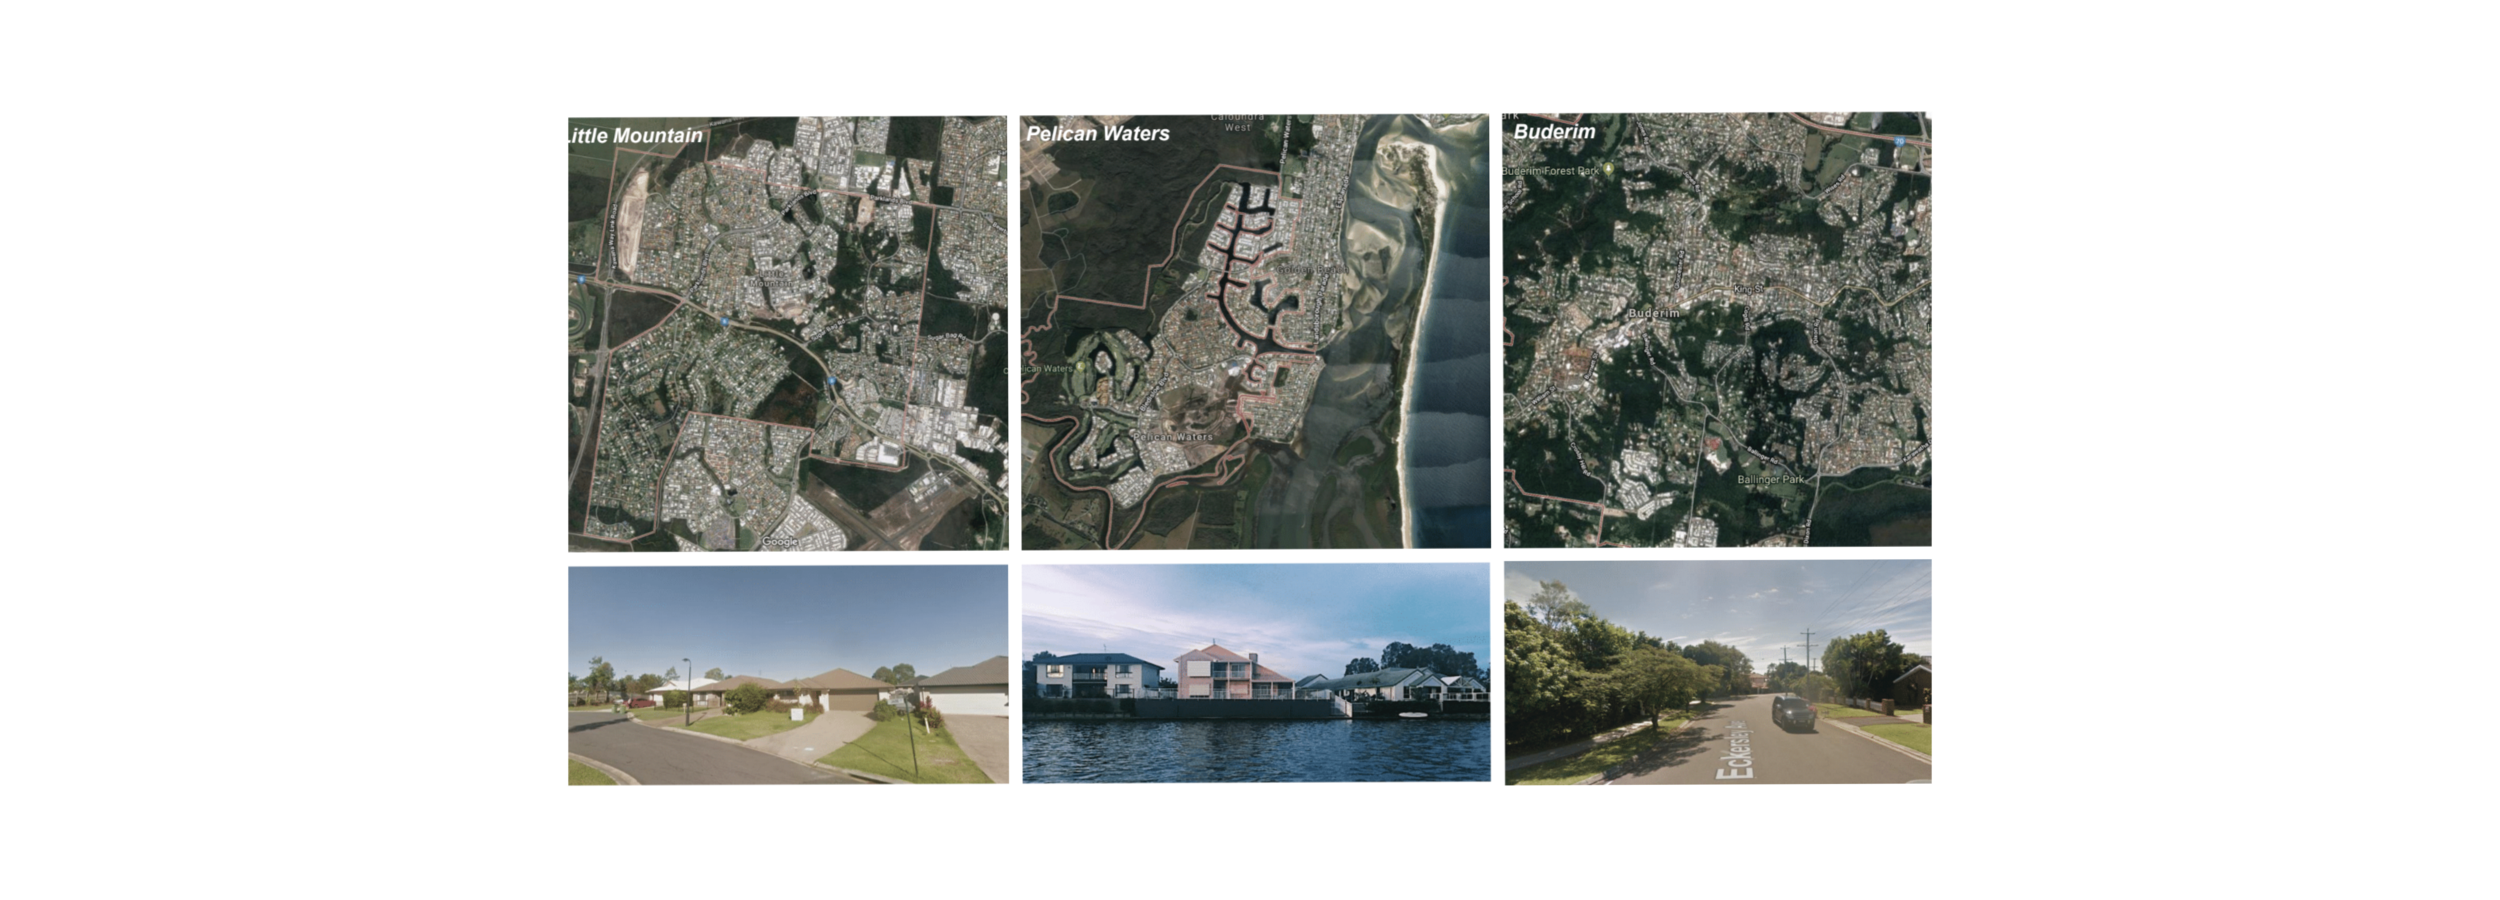 From satellite, and on the surface: Little Mountain, Pelican Waters, and Buderim.